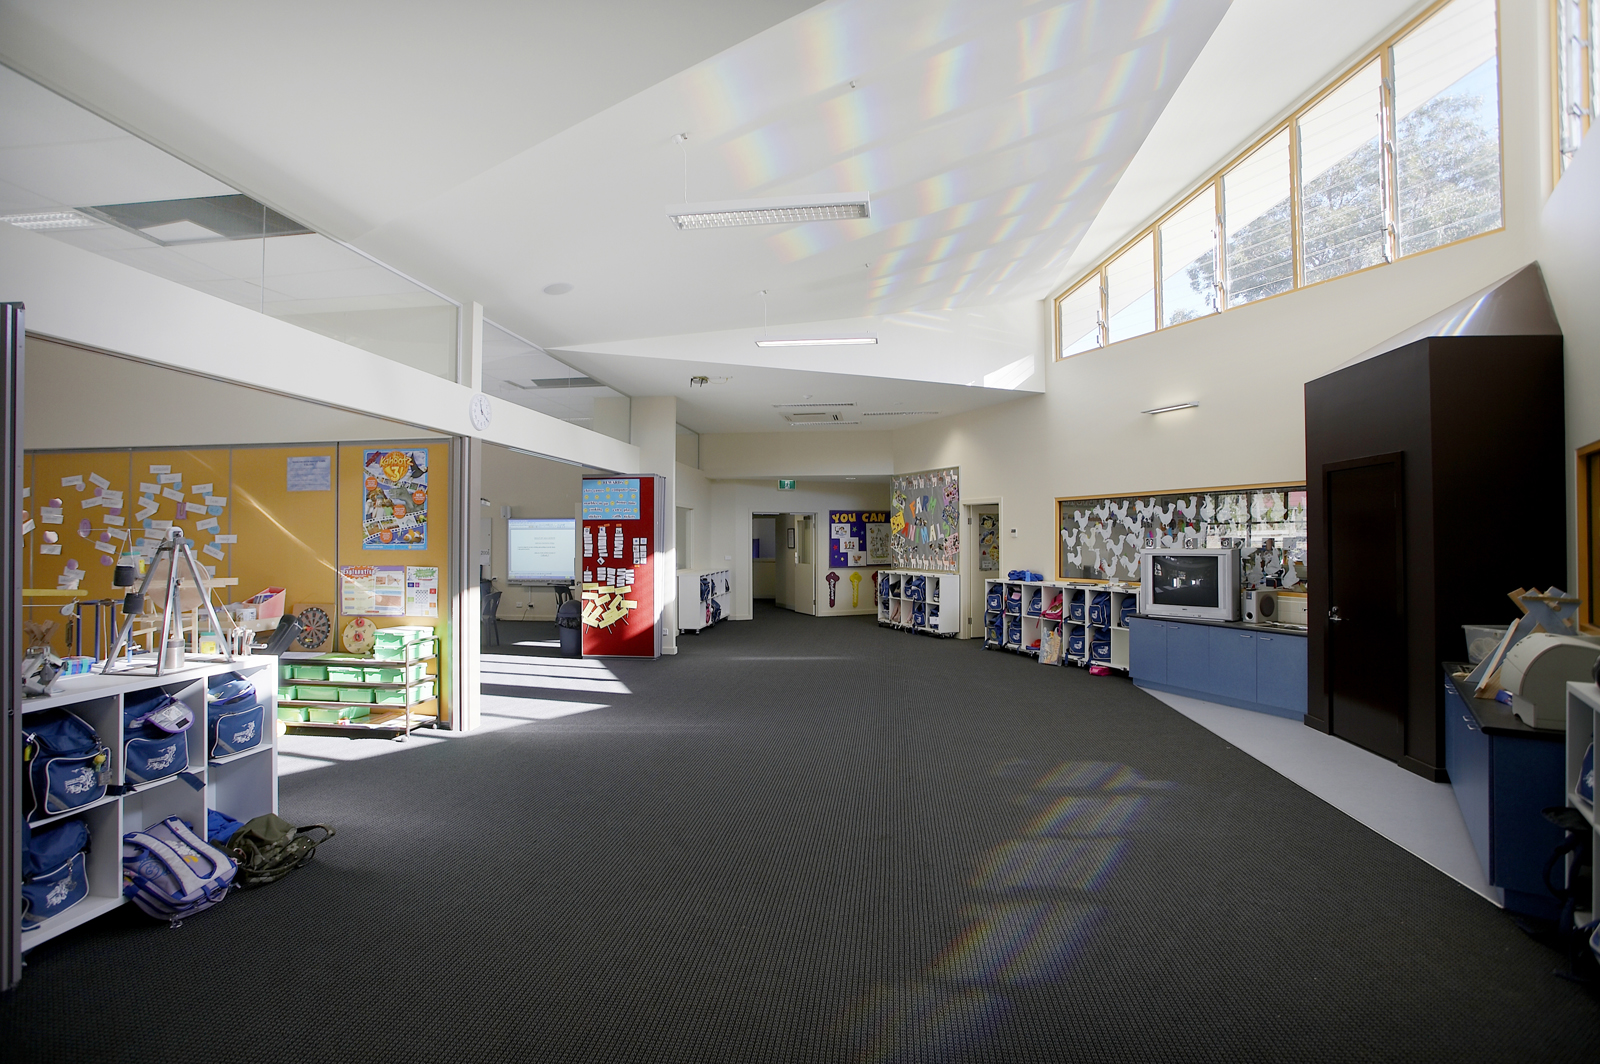 Traralgon South Primary School